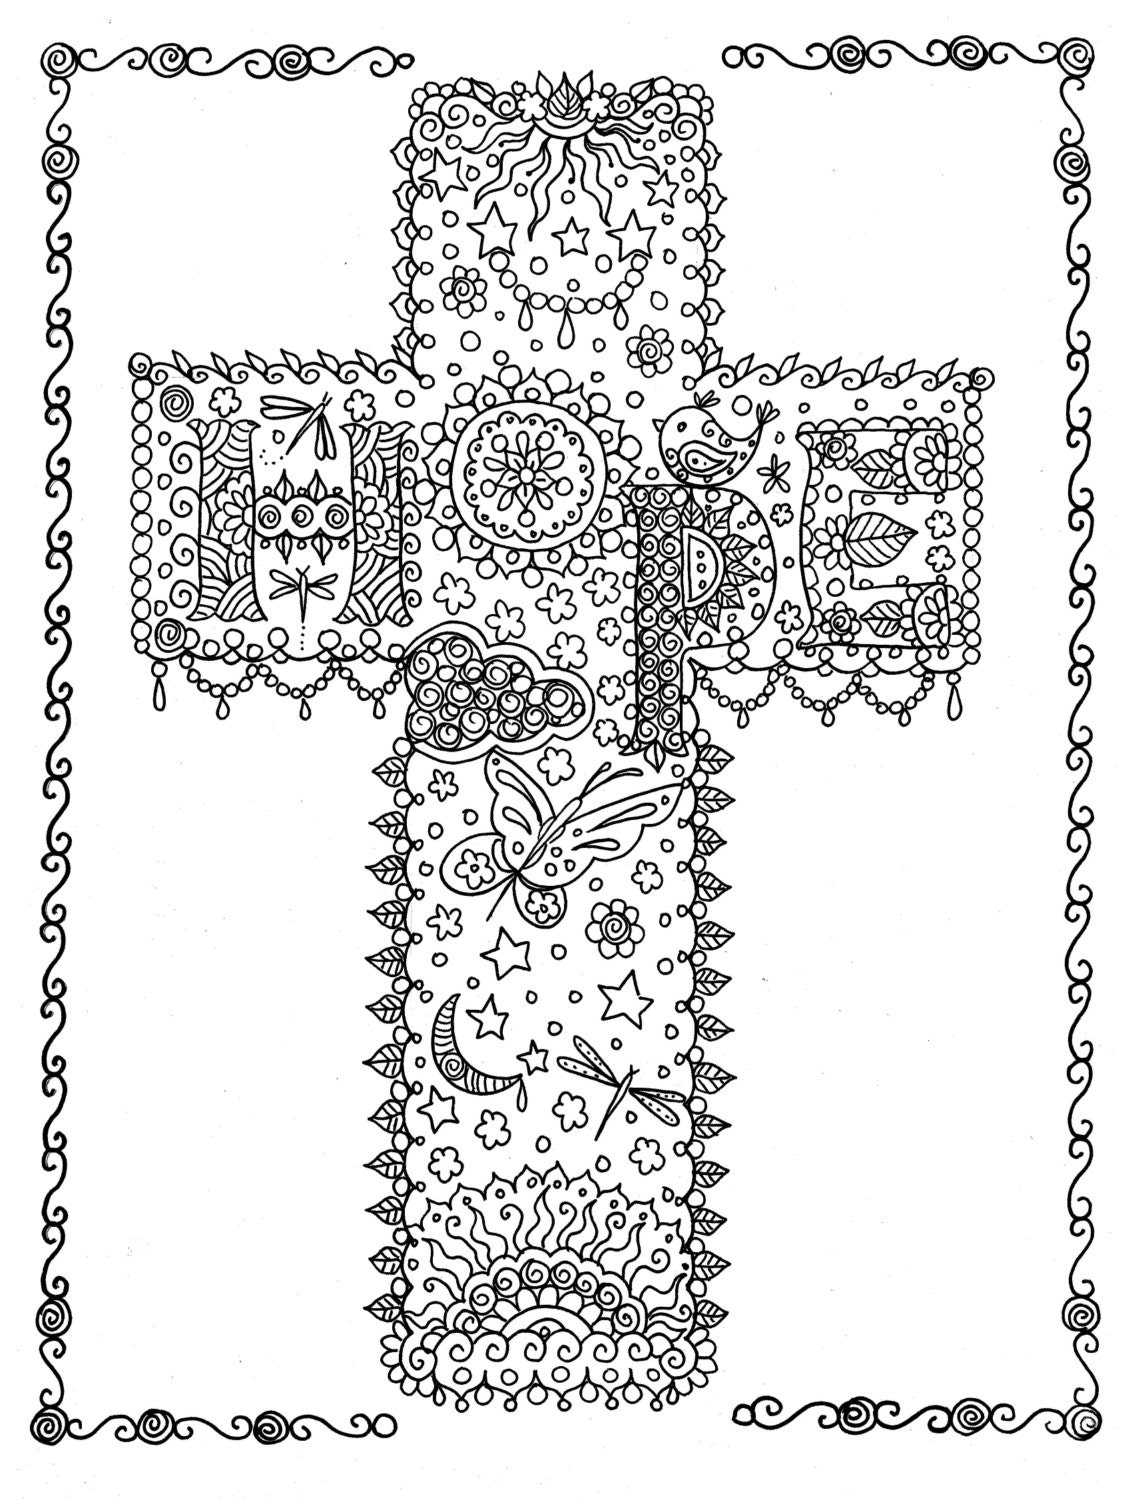 HOPE Cross Digital Coloring Page